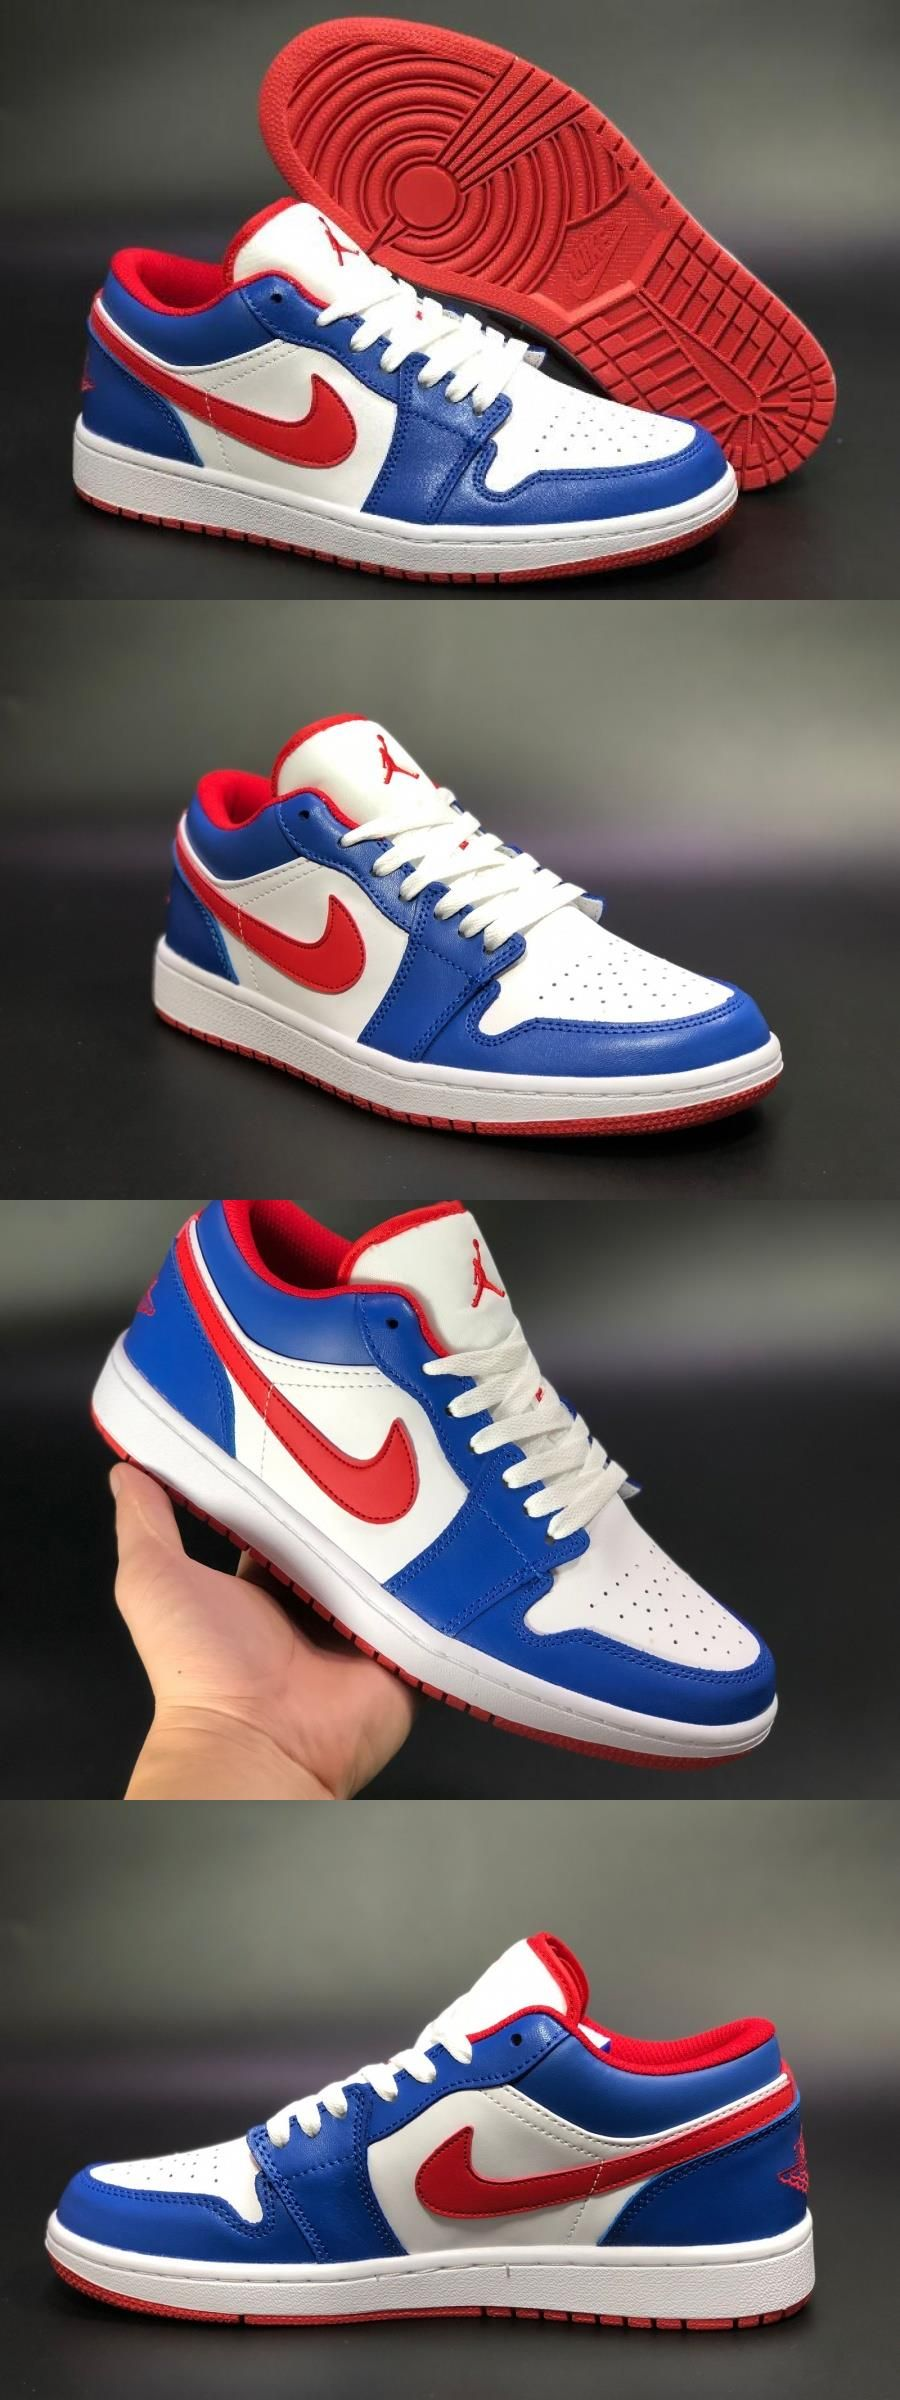 "Air Jordan 1 Low ""usa"" White/sport Royalfire Red For"